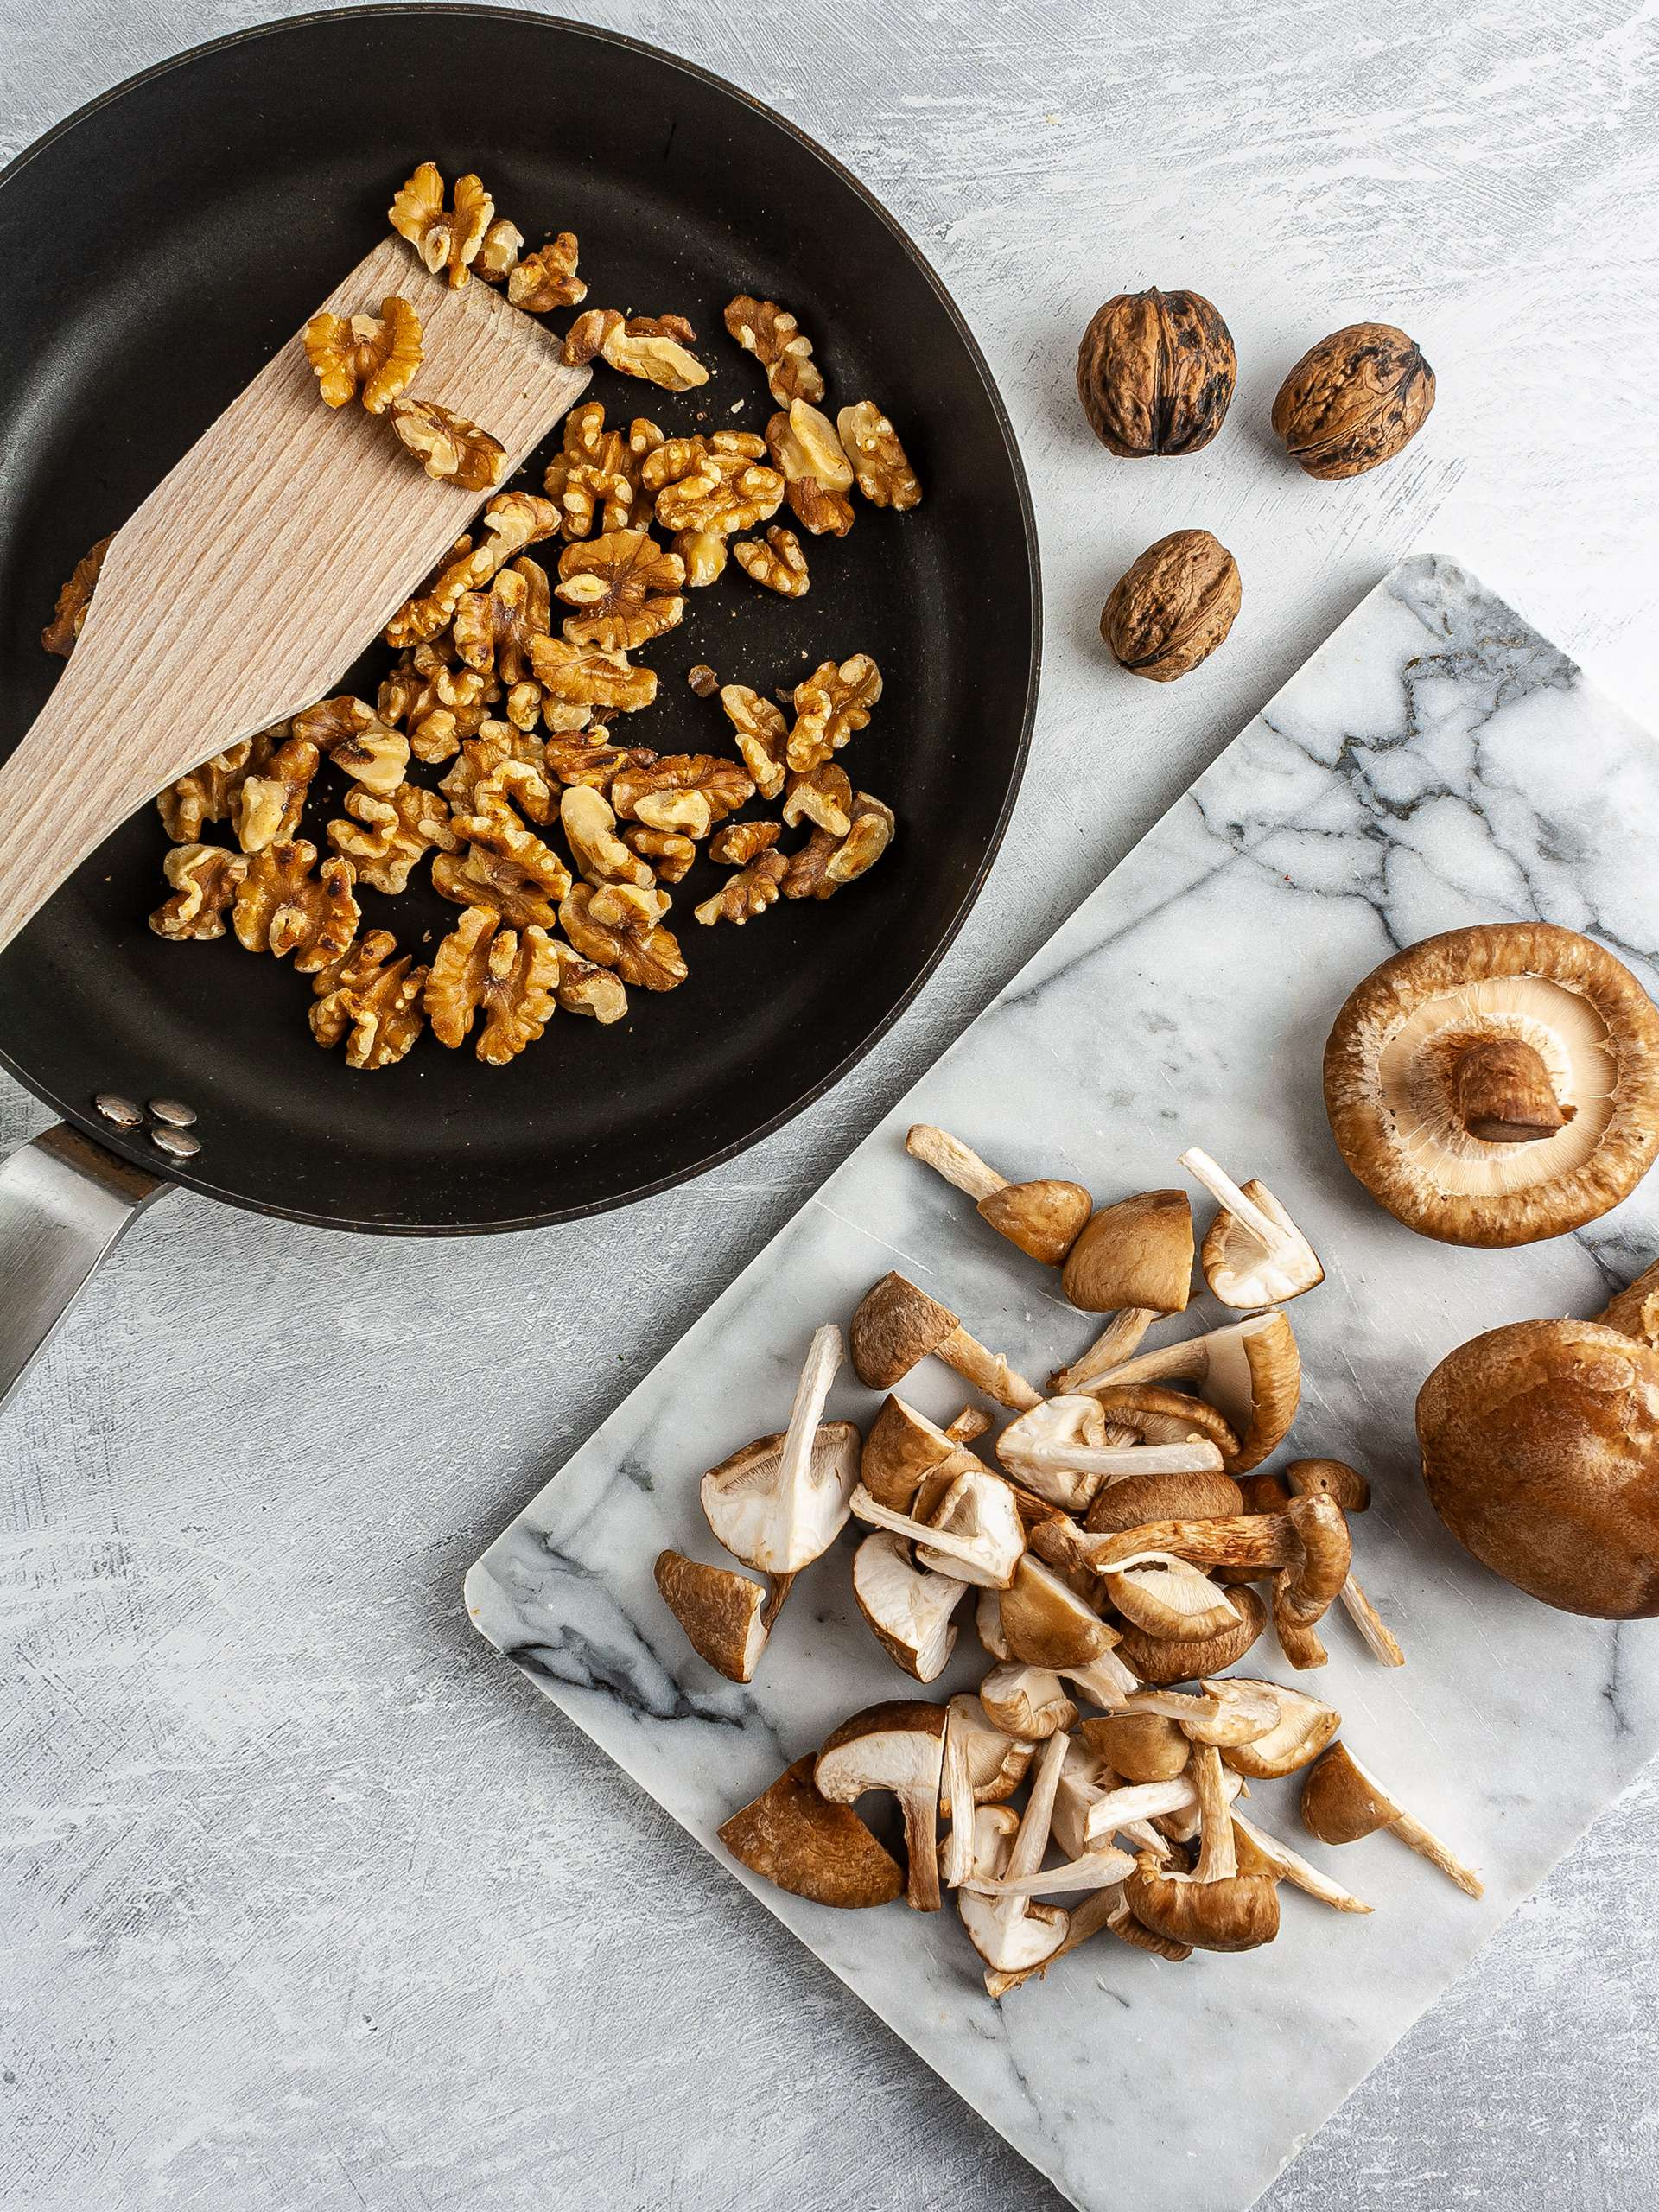 Toasted walnuts and chopped mushrooms